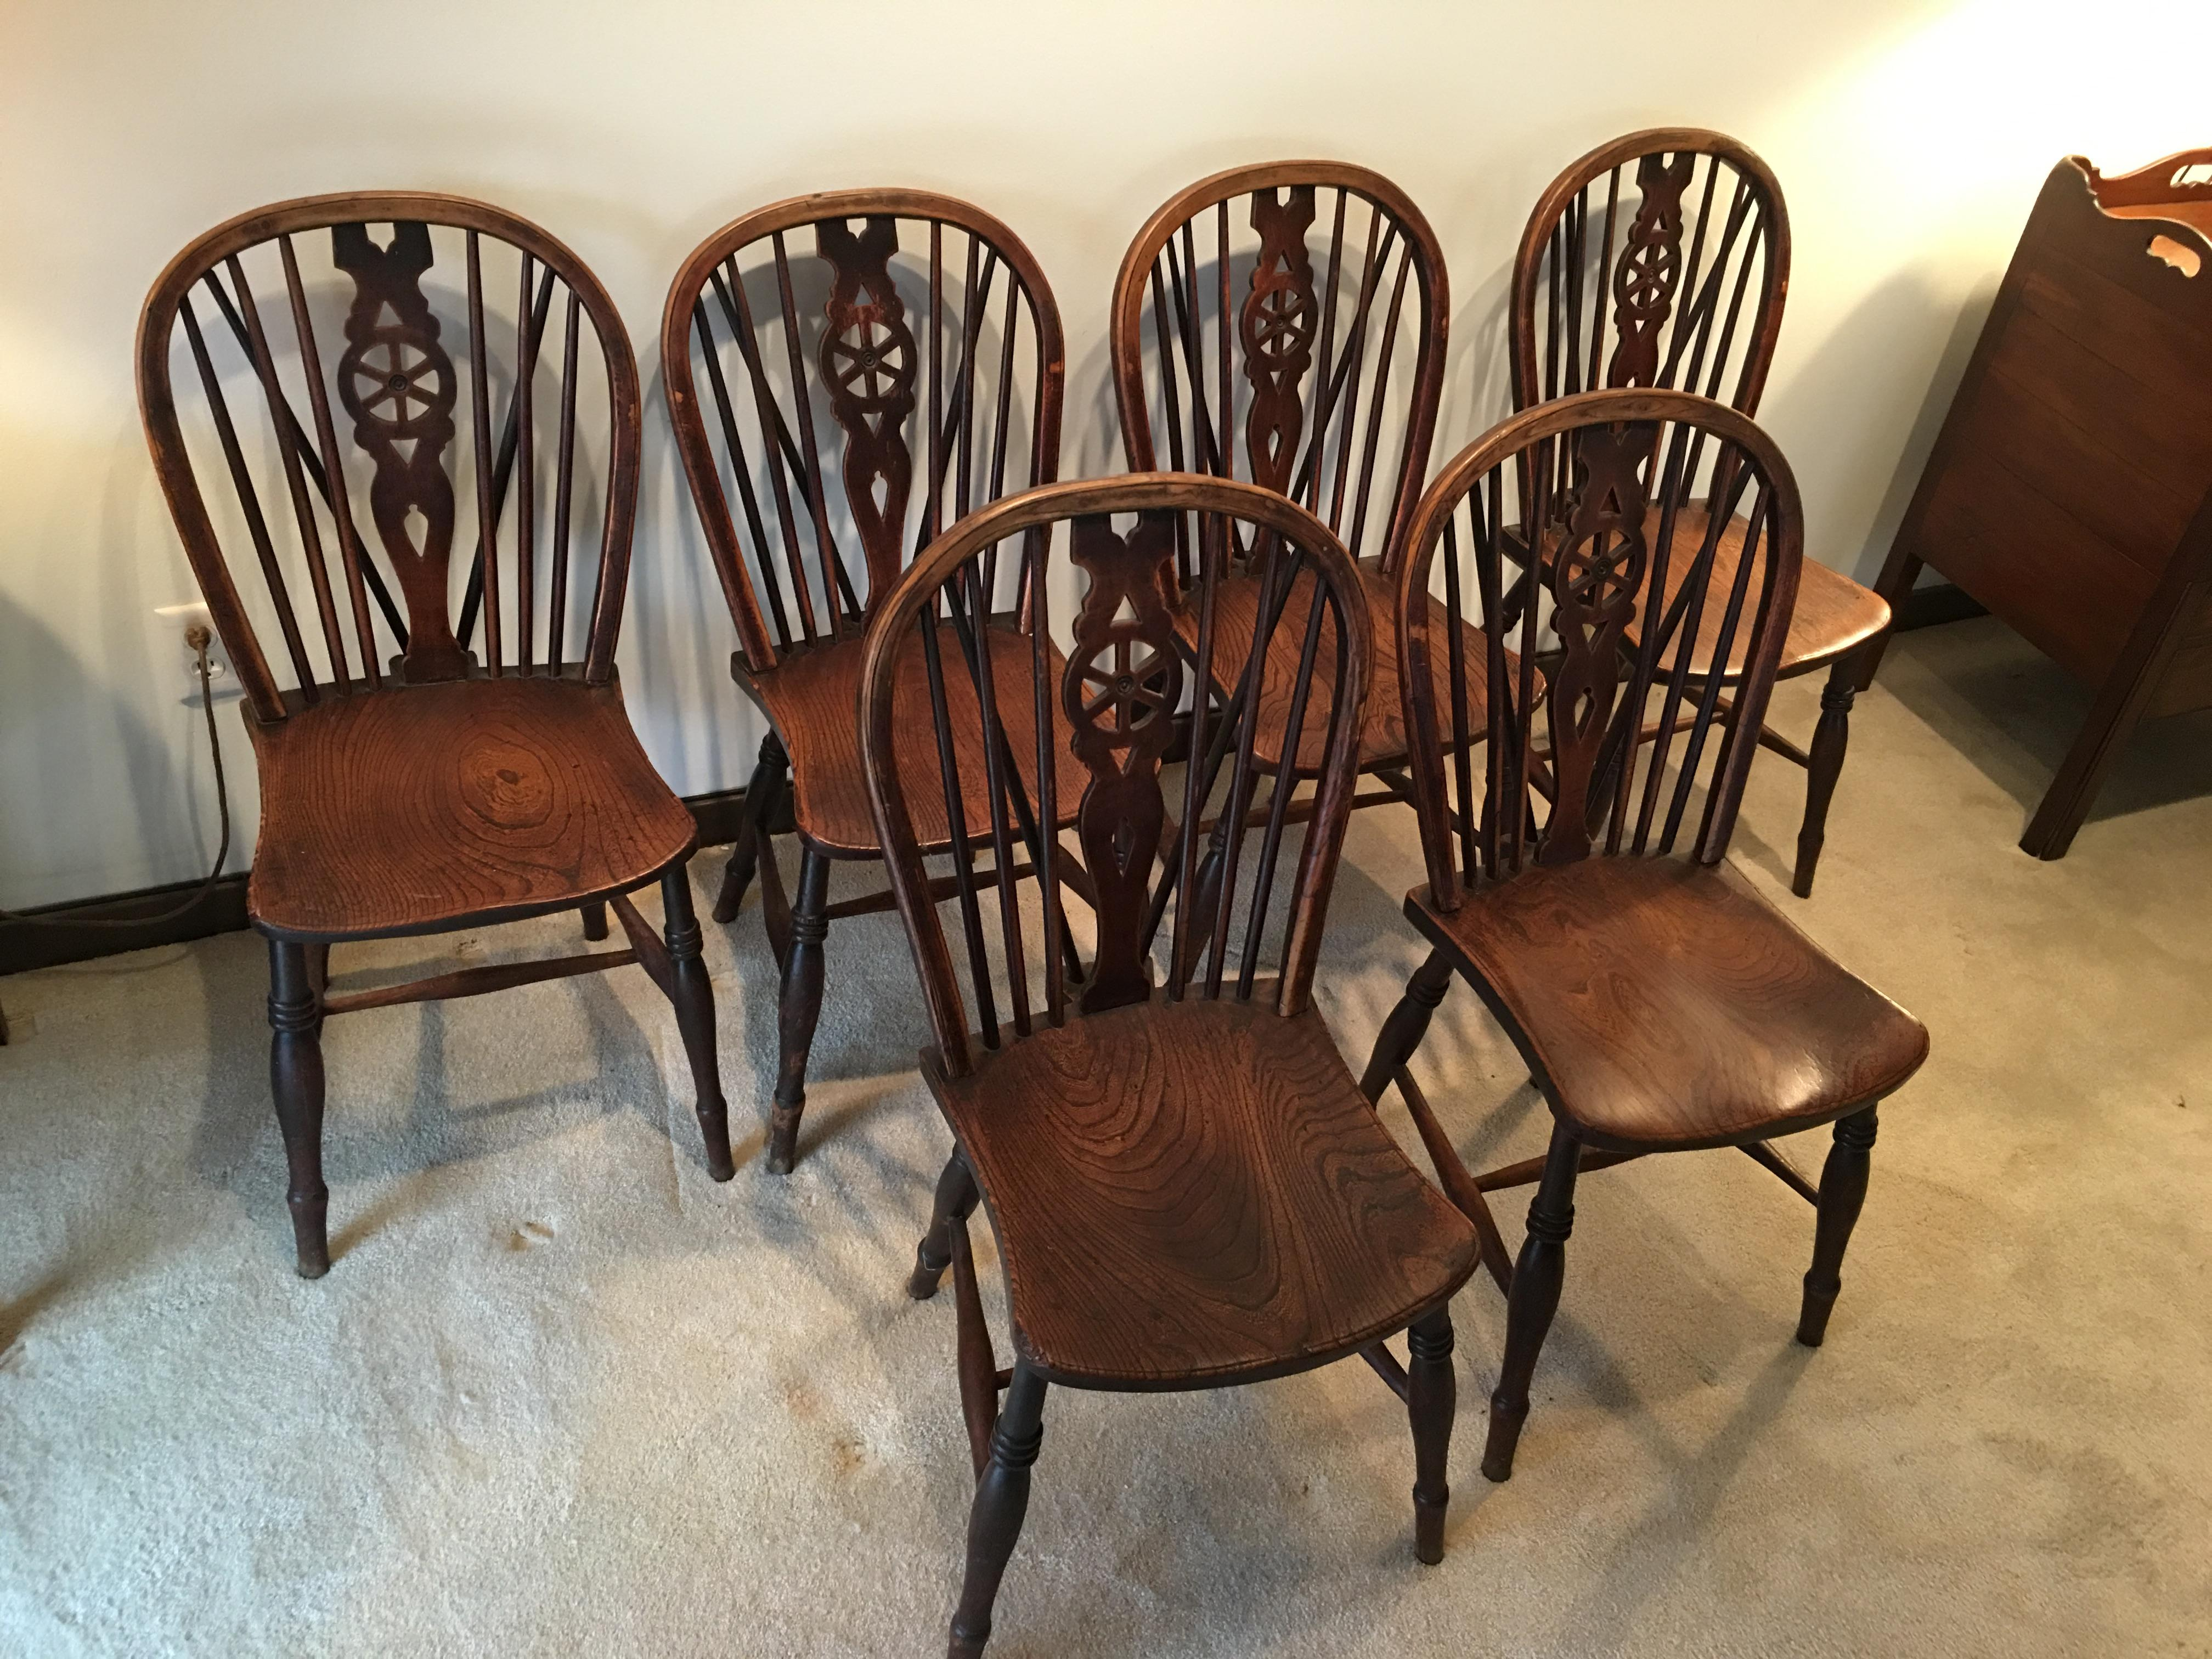 windsor kitchen chairs vanguard furniture dining oak room wagon wheel brace backs set in sturdy condition heavily patina with age height 34 5 inches width